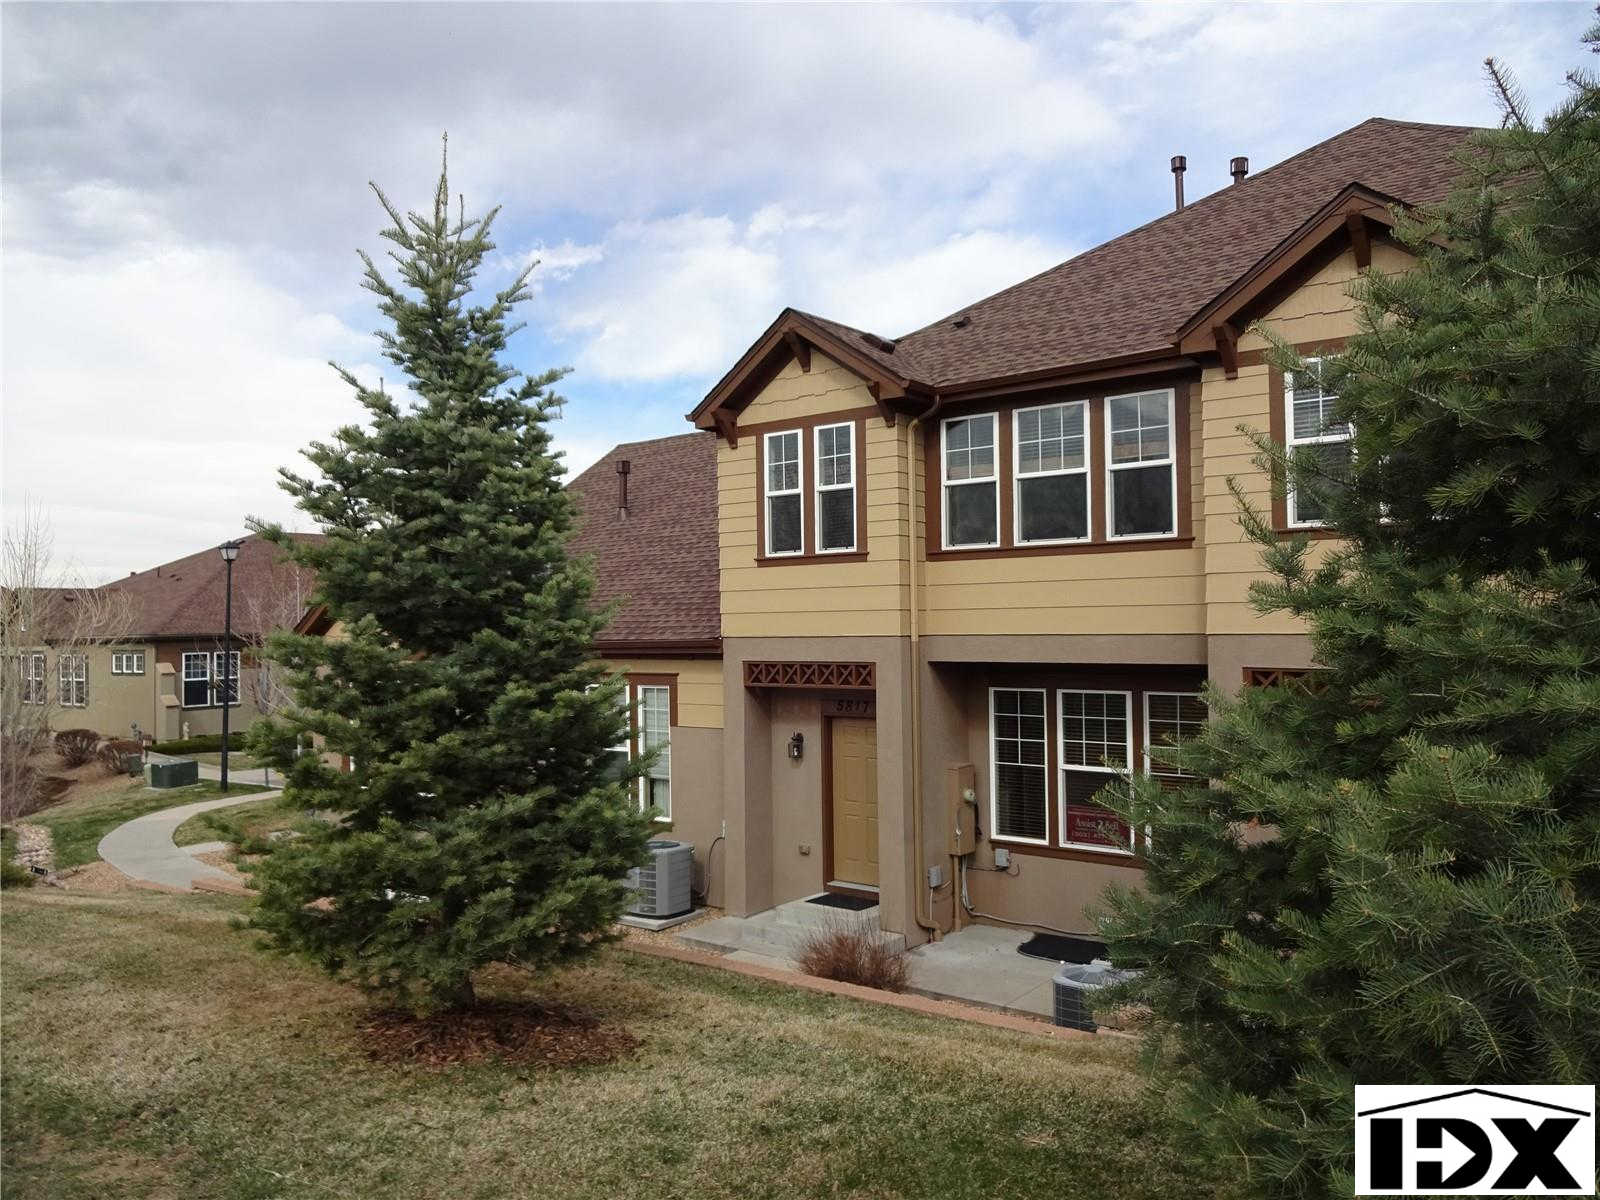 5817 South Vivian Way, Littleton, CO 80127 now has a new price of $425,000!